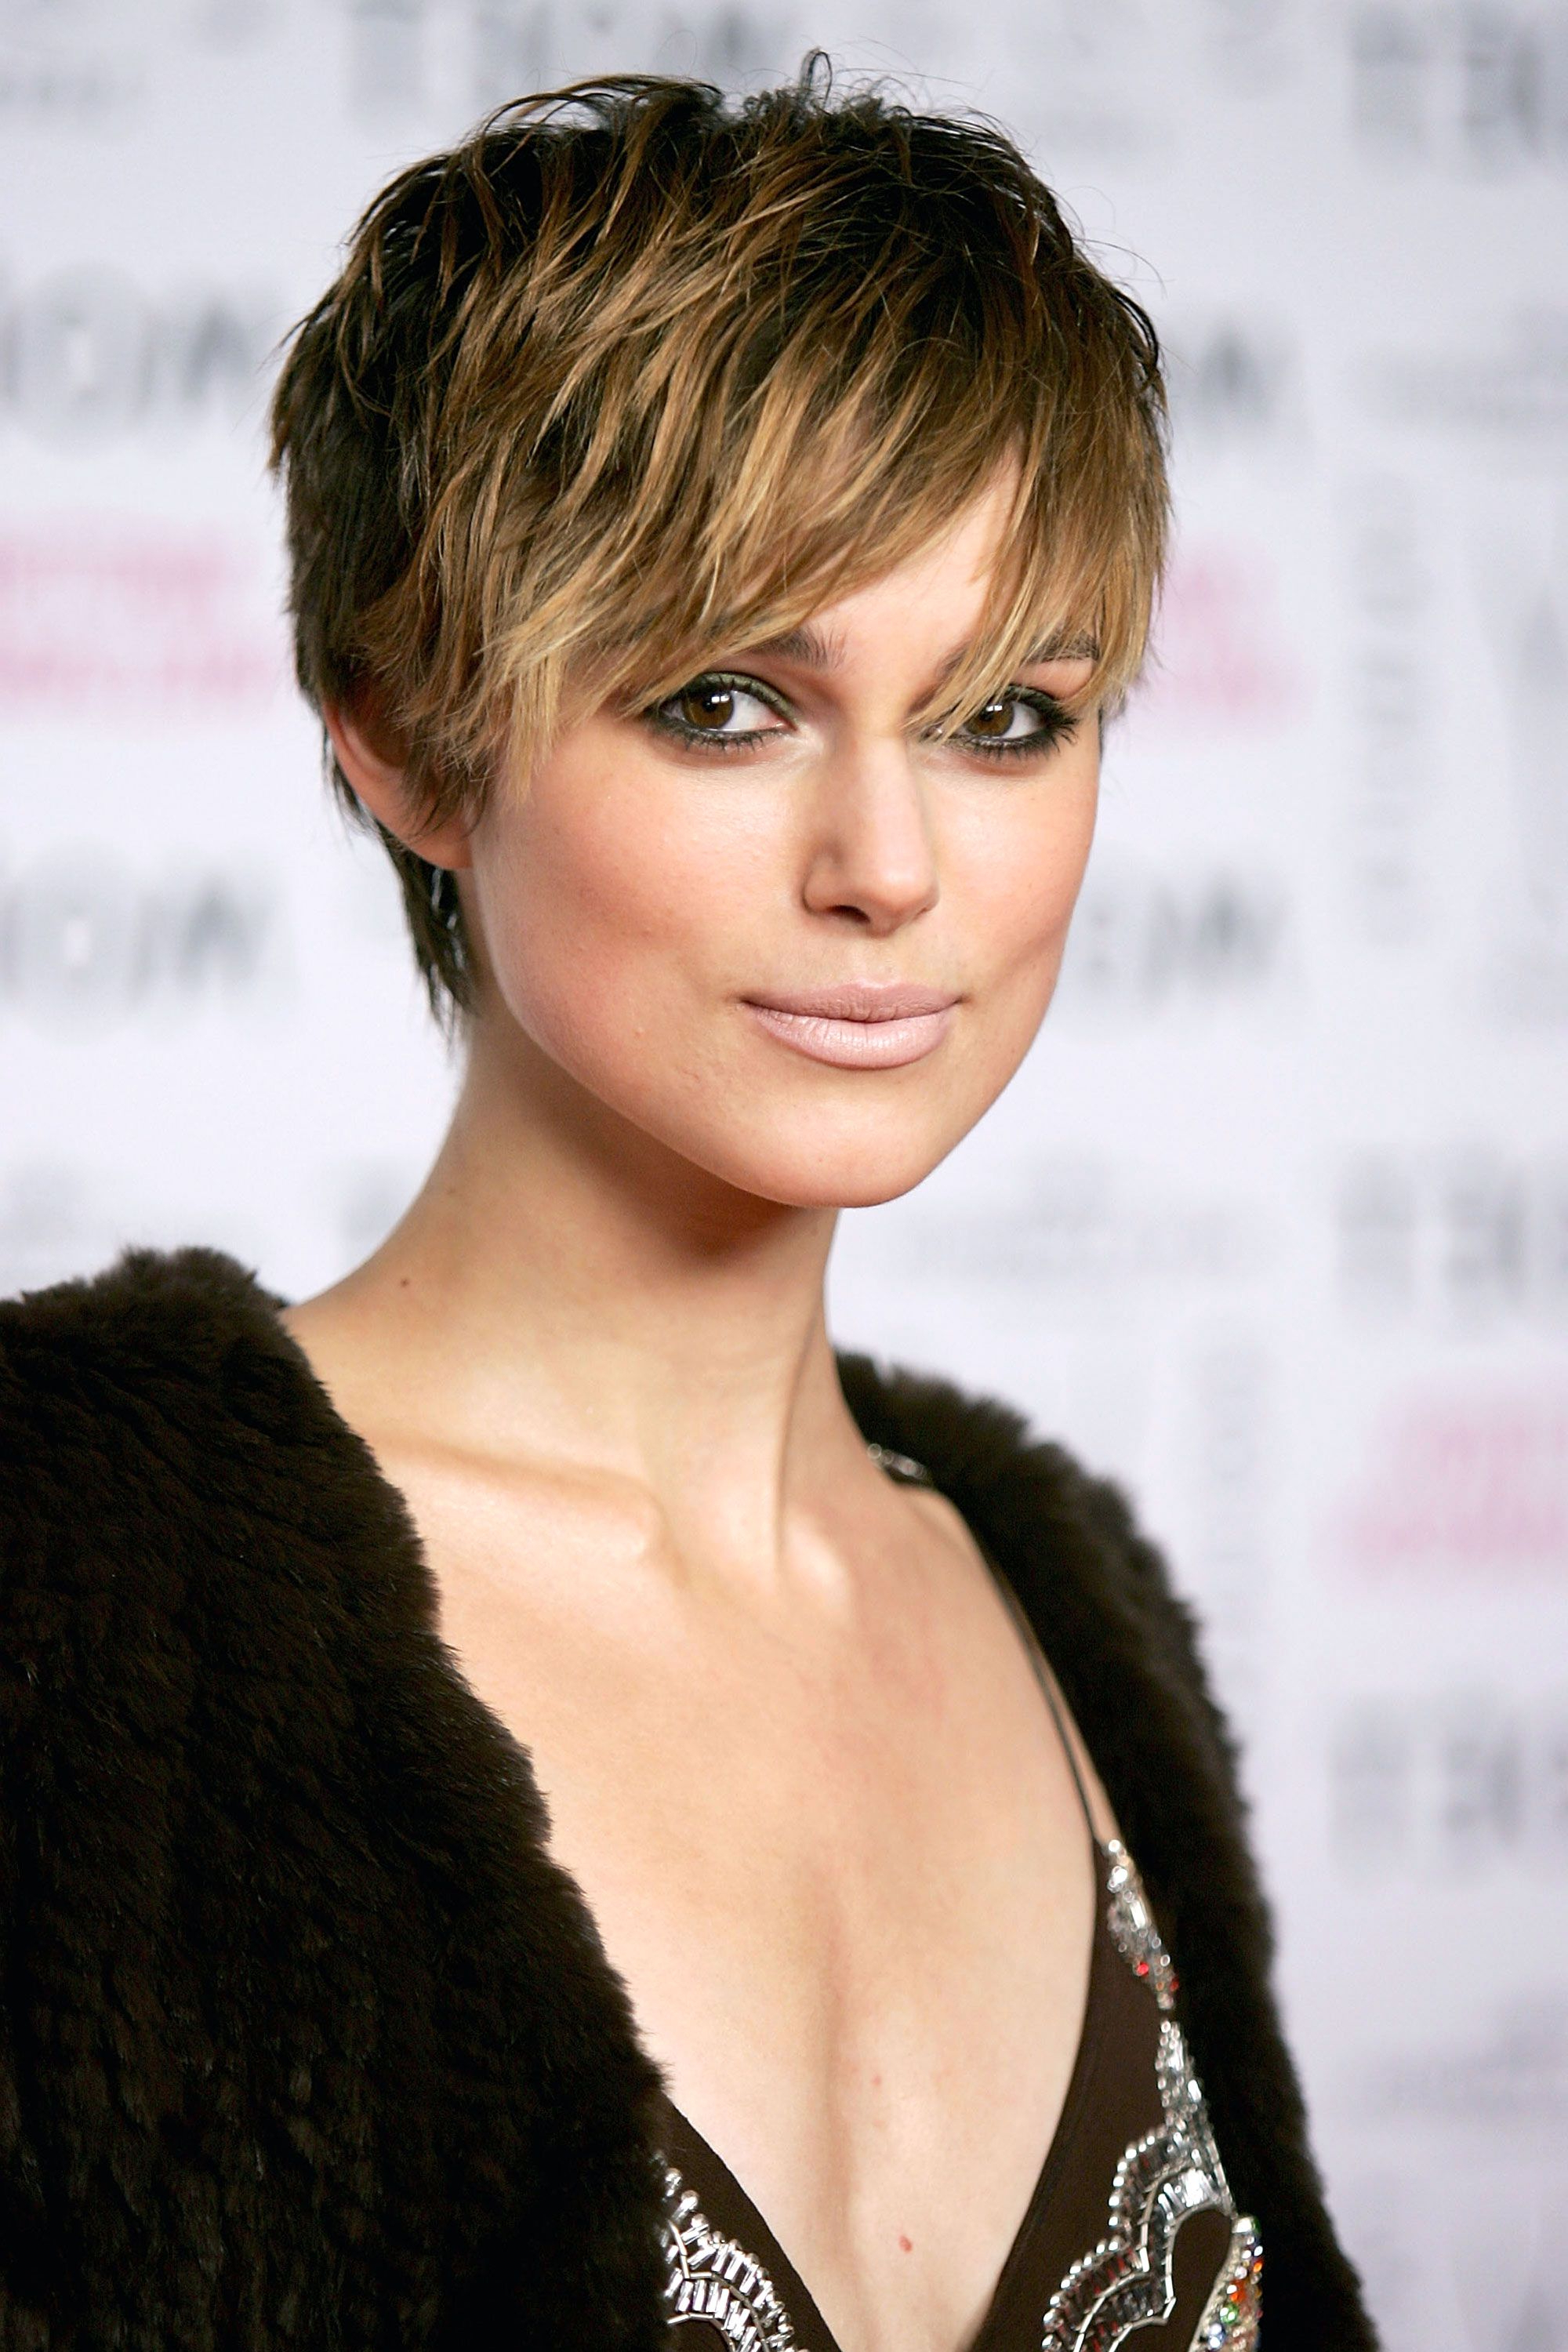 50+ Pixie Cuts We Love For 2018 – Short Pixie Hairstyles From With Regard To Layered Pixie Hairstyles With An Edgy Fringe (View 15 of 20)